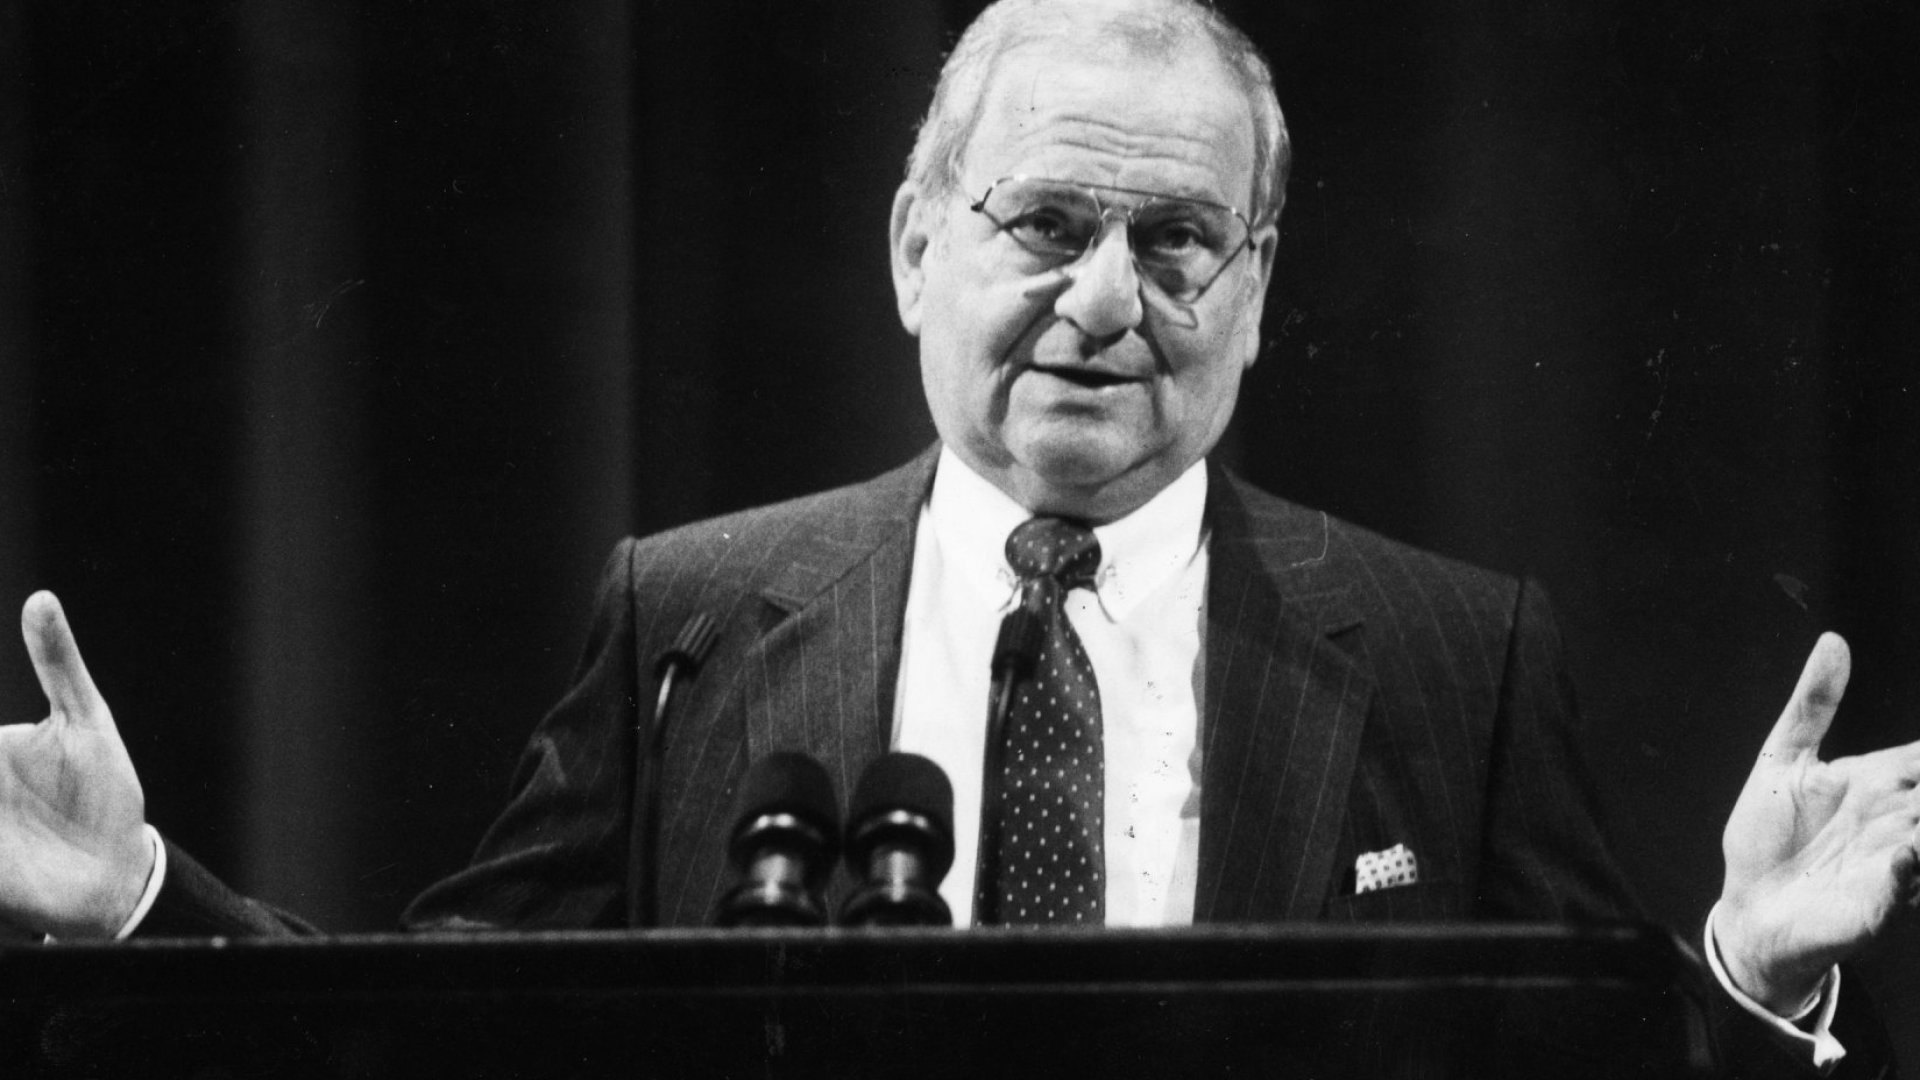 Famed Auto Industry Businessman Lee Iacocca Dies at 94